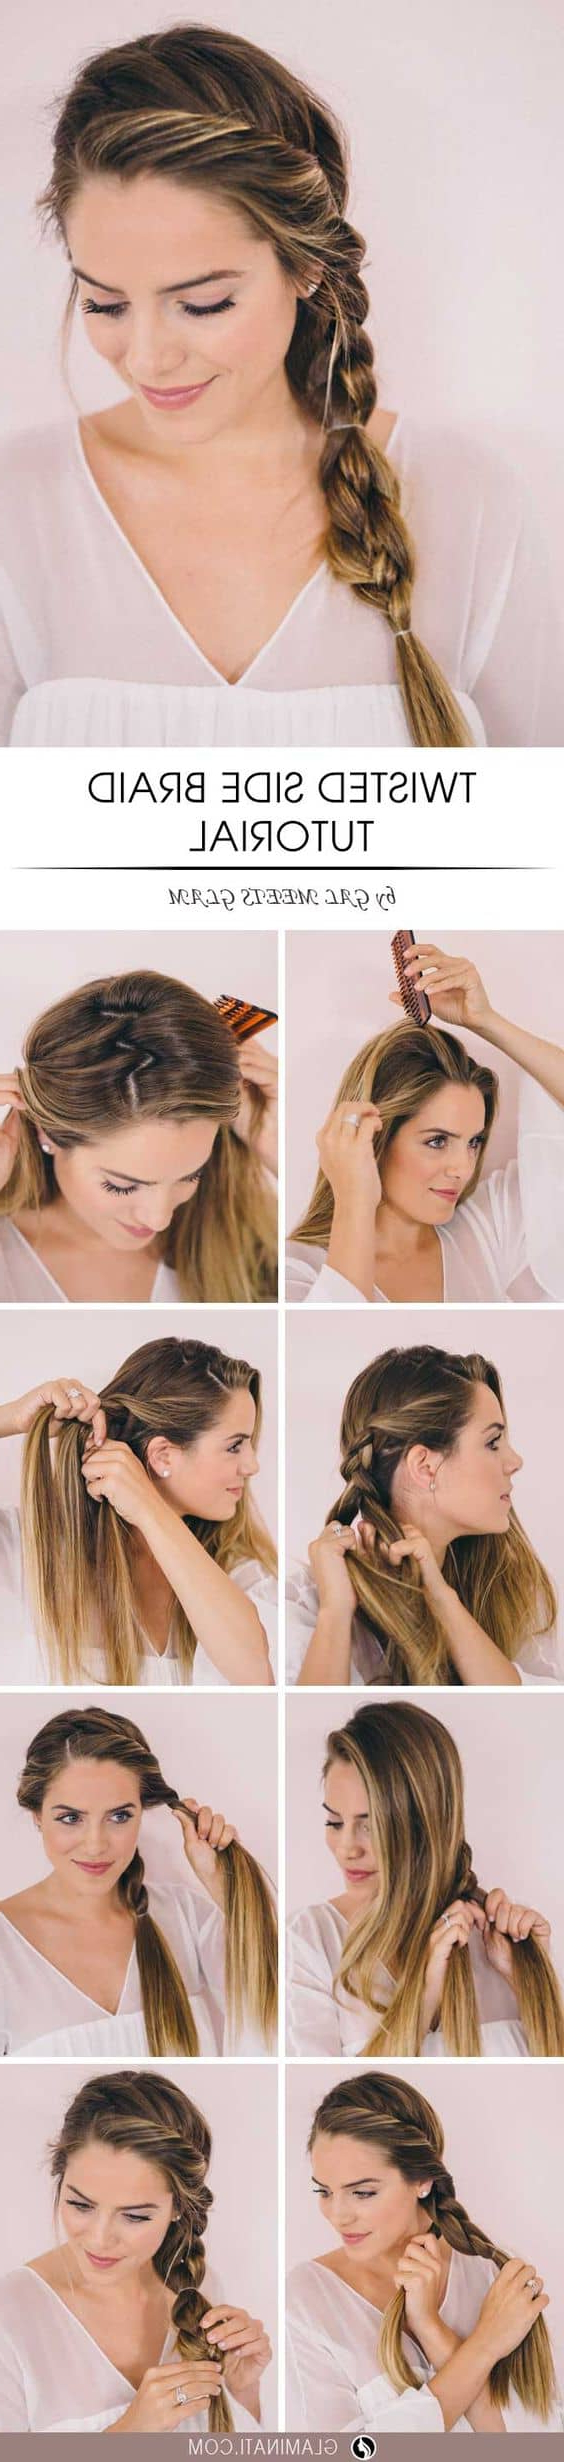 Latest Fishtail Side Braided Hairstyles With Regard To 25 Effortless Side Braid Hairstyles To Make You Feel Special (View 16 of 20)